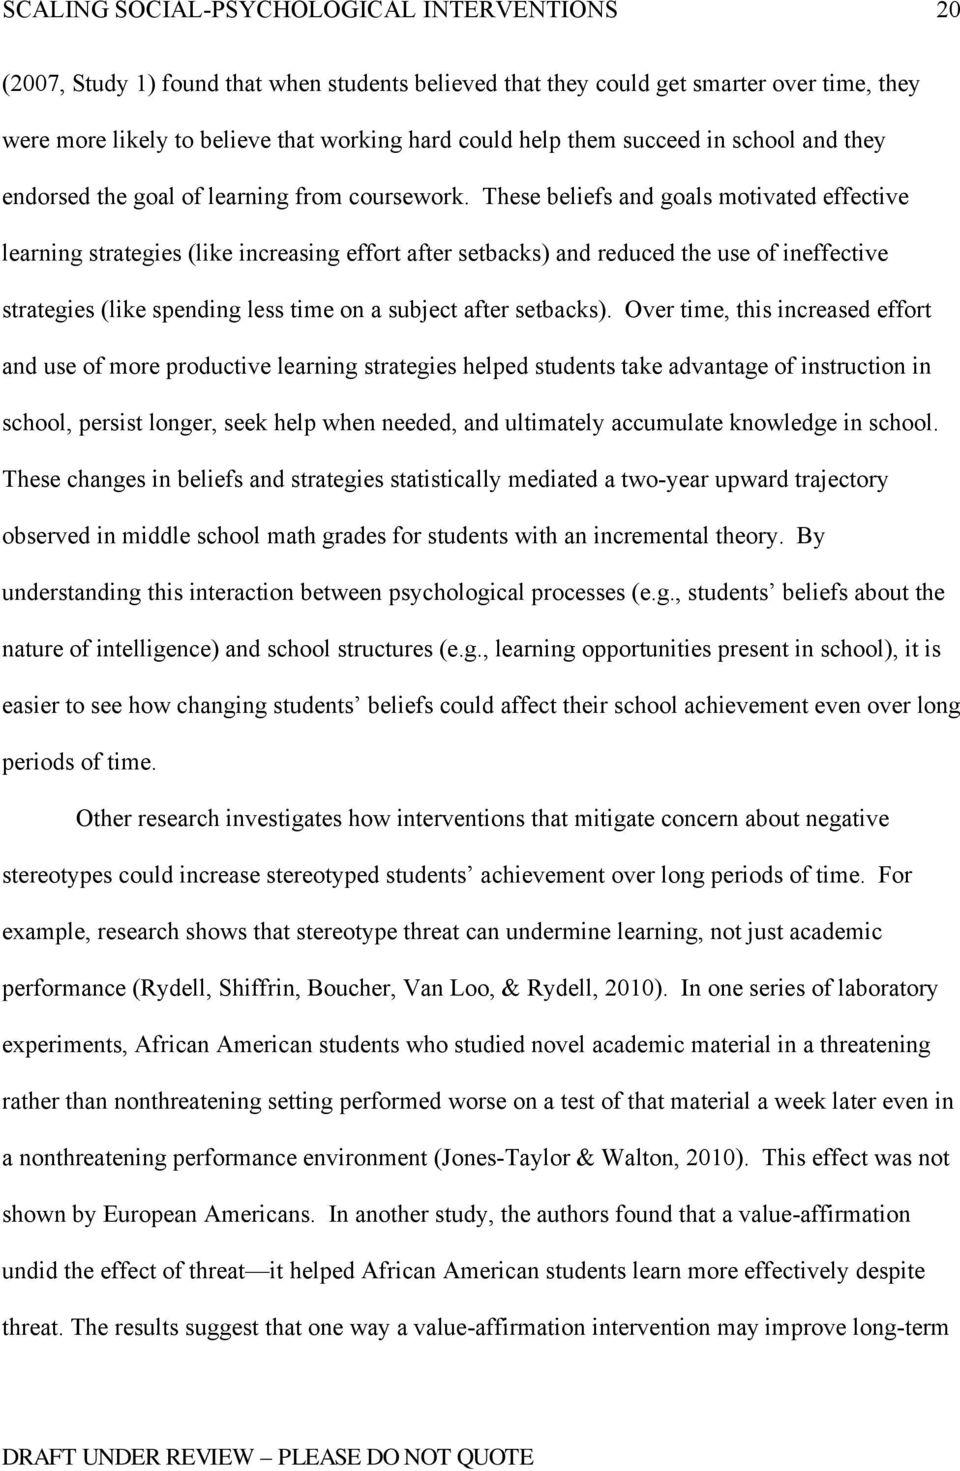 These beliefs and goals motivated effective learning strategies (like increasing effort after setbacks) and reduced the use of ineffective strategies (like spending less time on a subject after